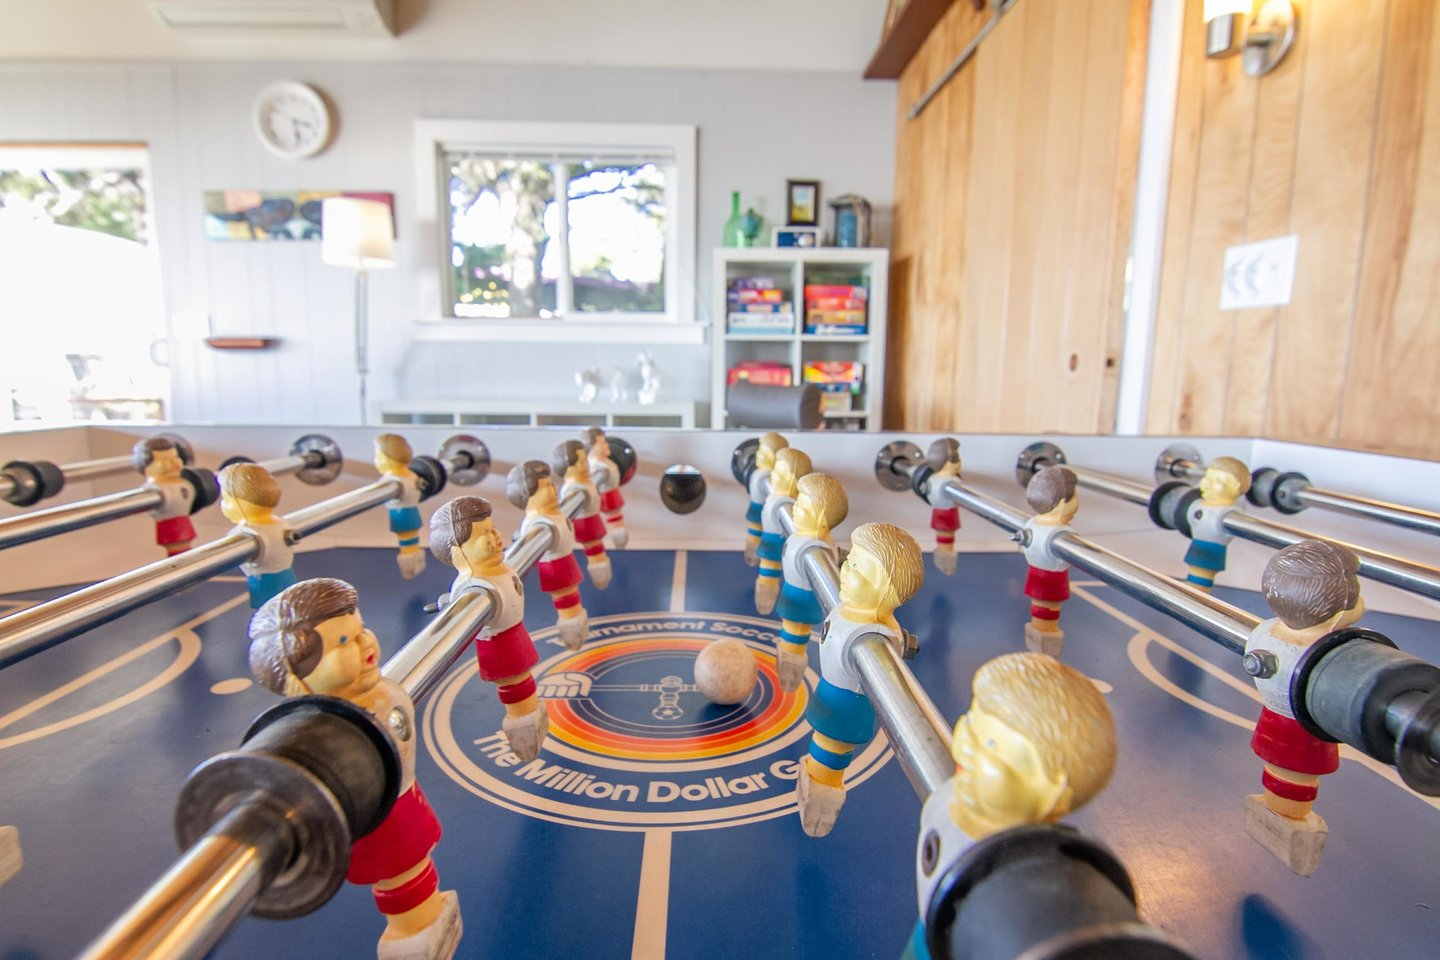 Heat up some friendly competition with a game of foosball.